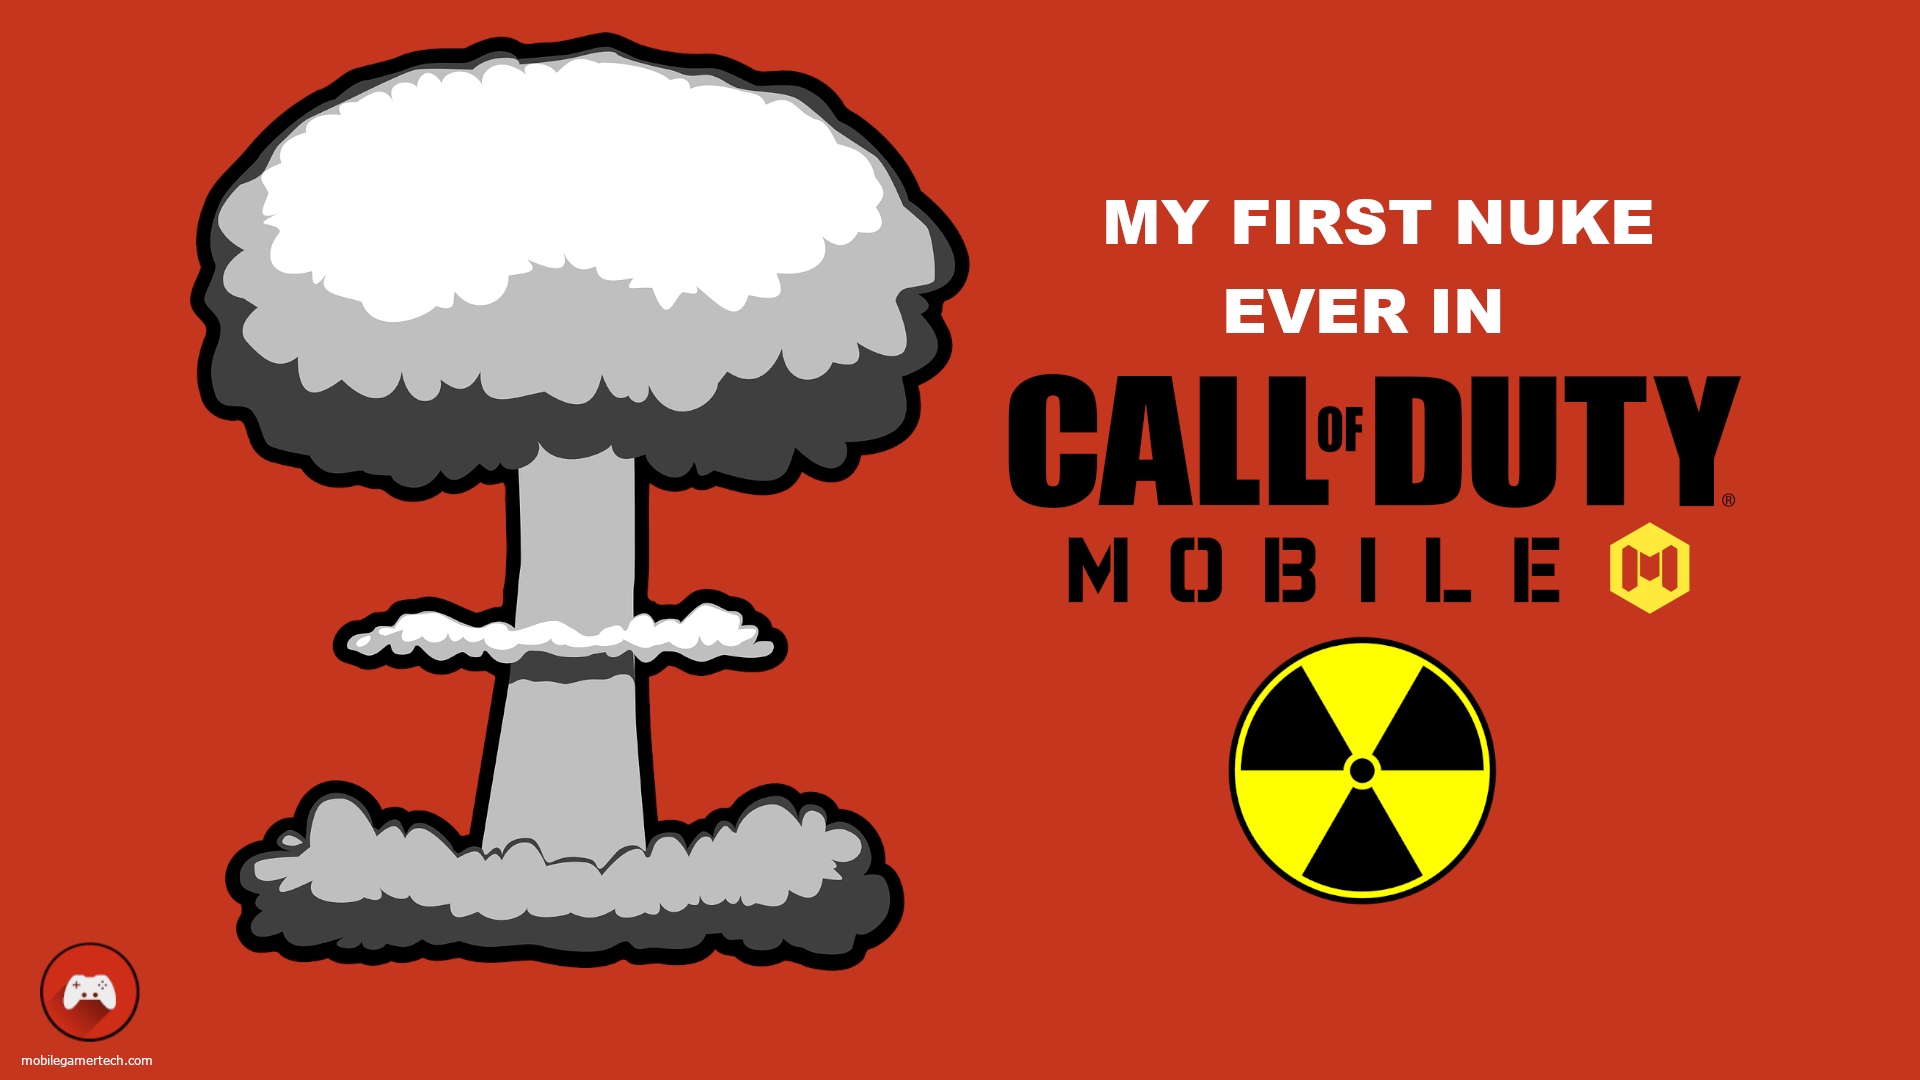 Call of Duty mobile nuke